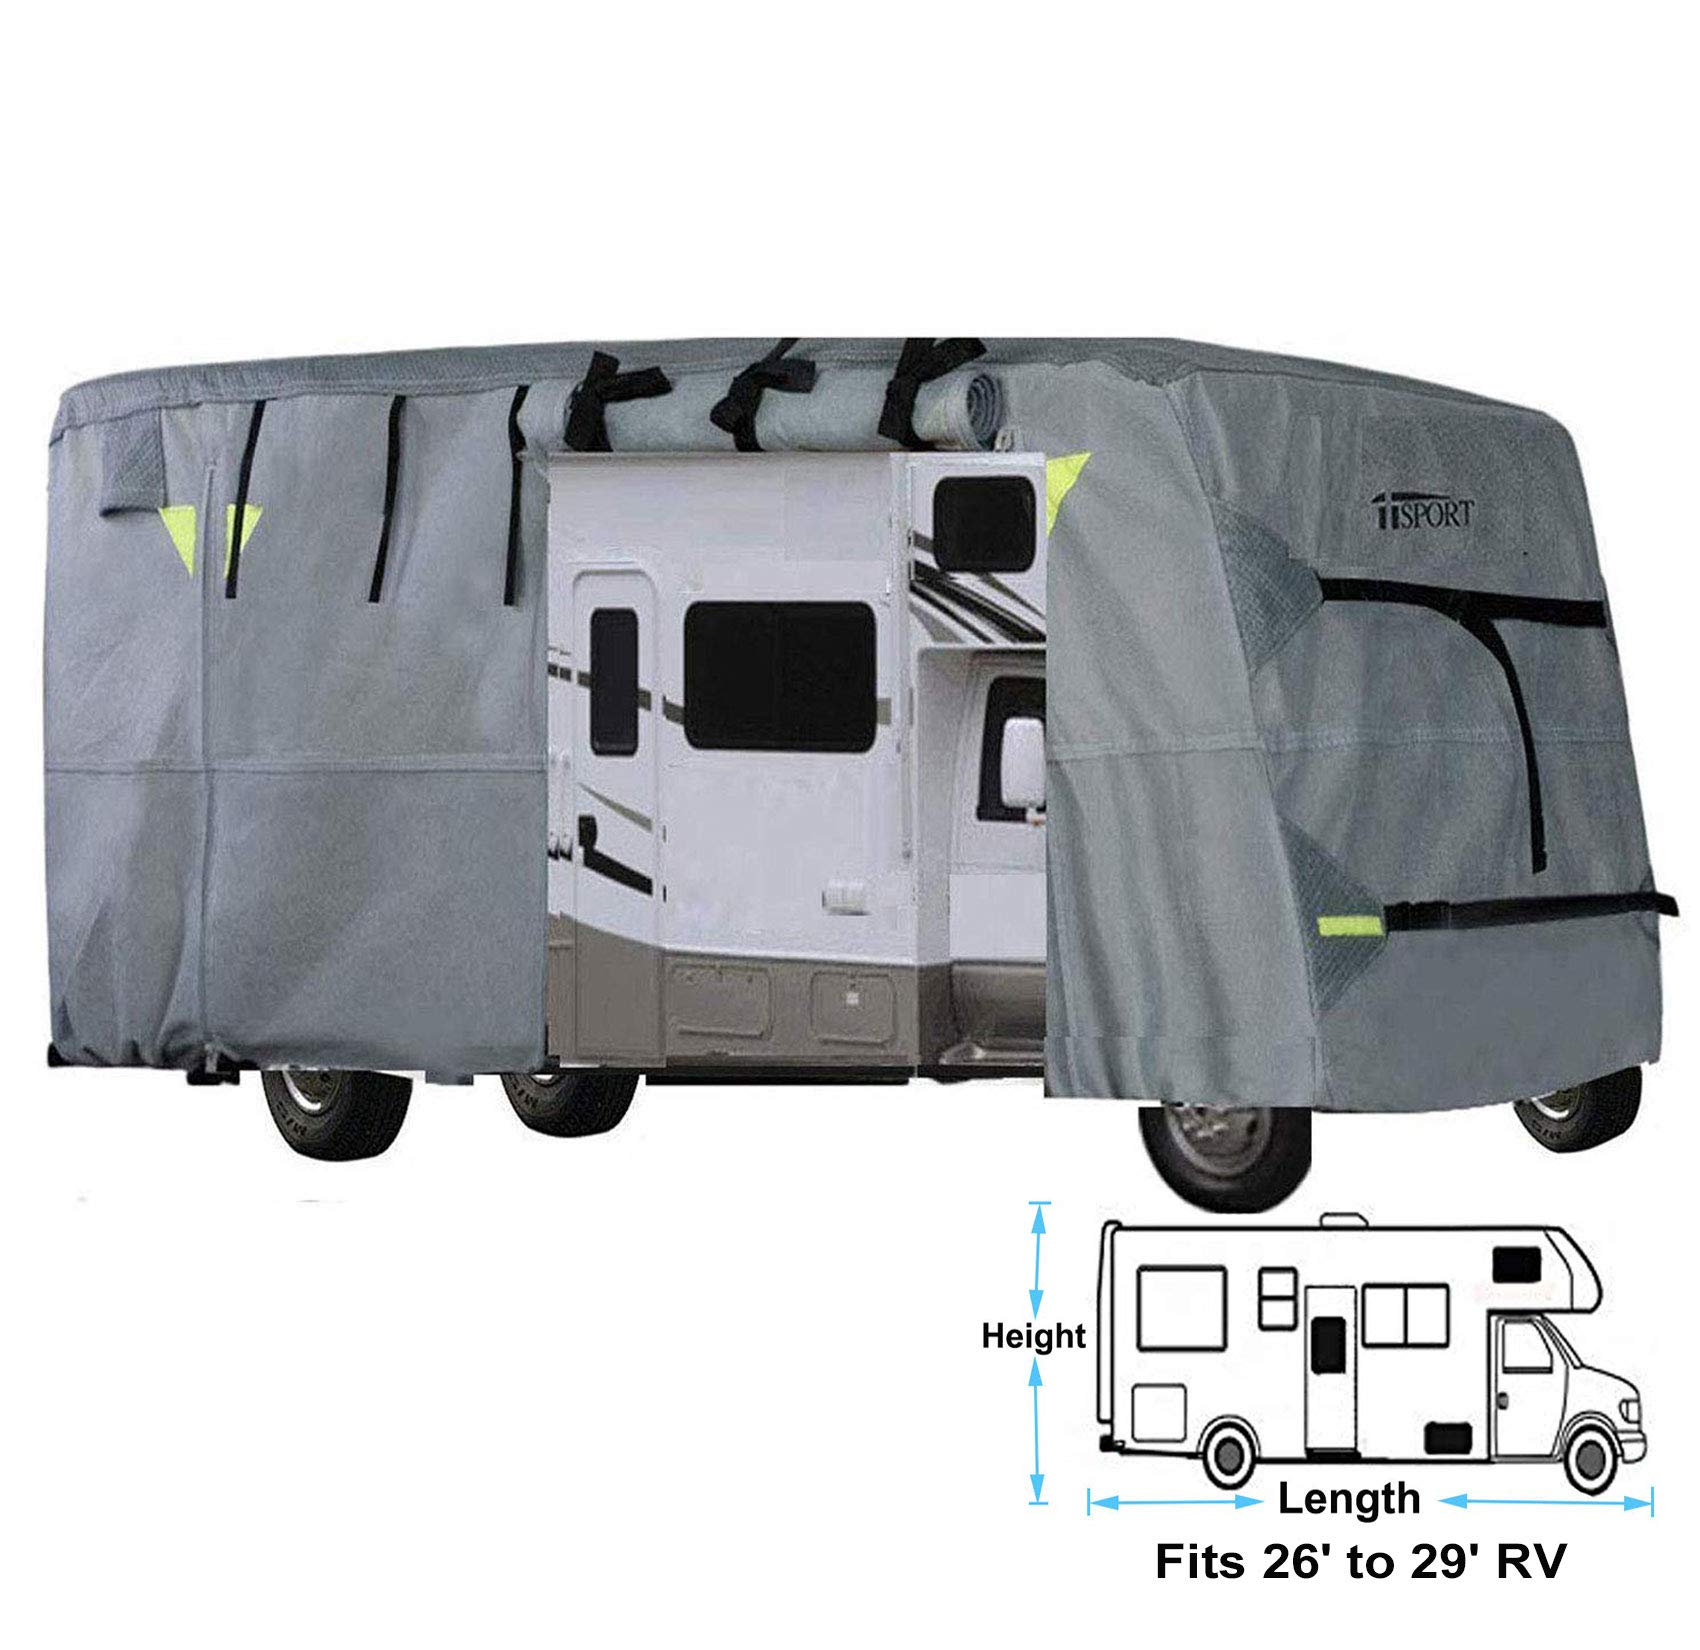 iiSPORT Upgrade 4-Ply Top Panel Class C Motorhome RV Cover Fits 26'- 29' Long Ripstop Waterproof RV Covers with Storage Bag, Reflective Panel, Air Vents & Repair Adhesive Patch